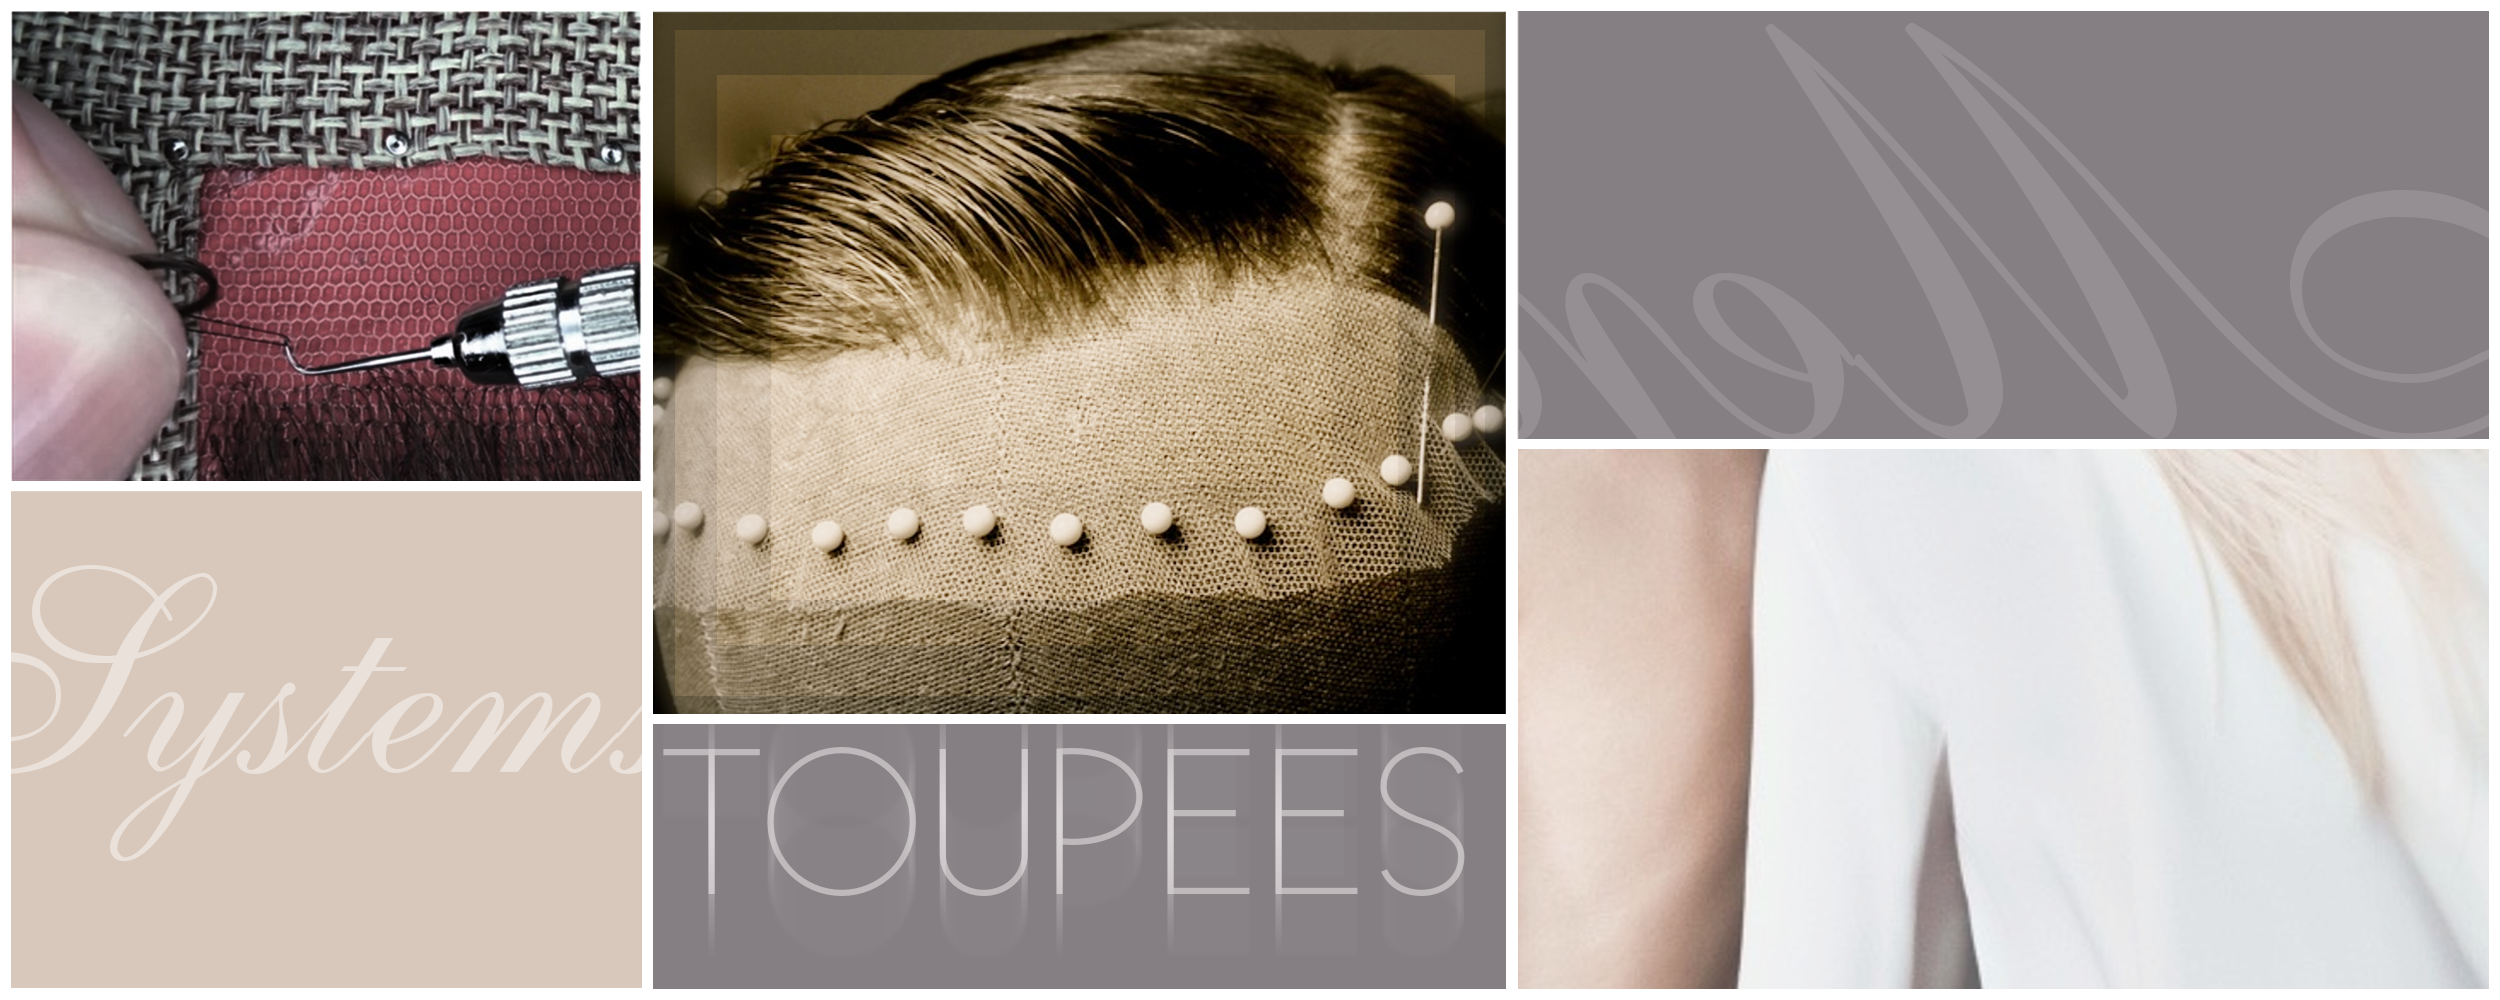 Our custom toupees are made here in New York